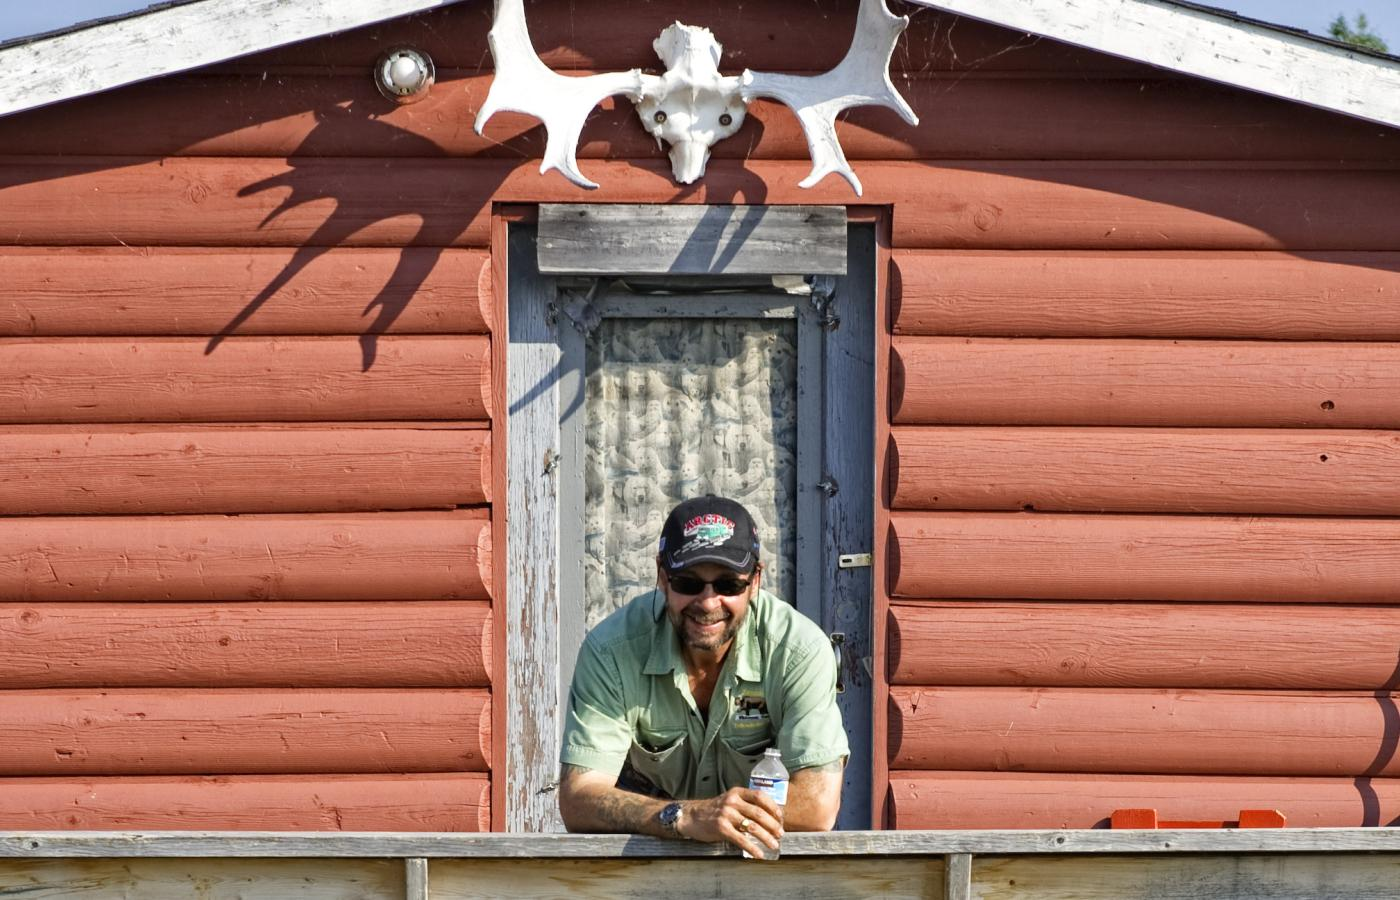 Ragnar Wesstrom, the owner of Trout Rock Lodge outside of Yellowknife, Northwest Territories, Canada